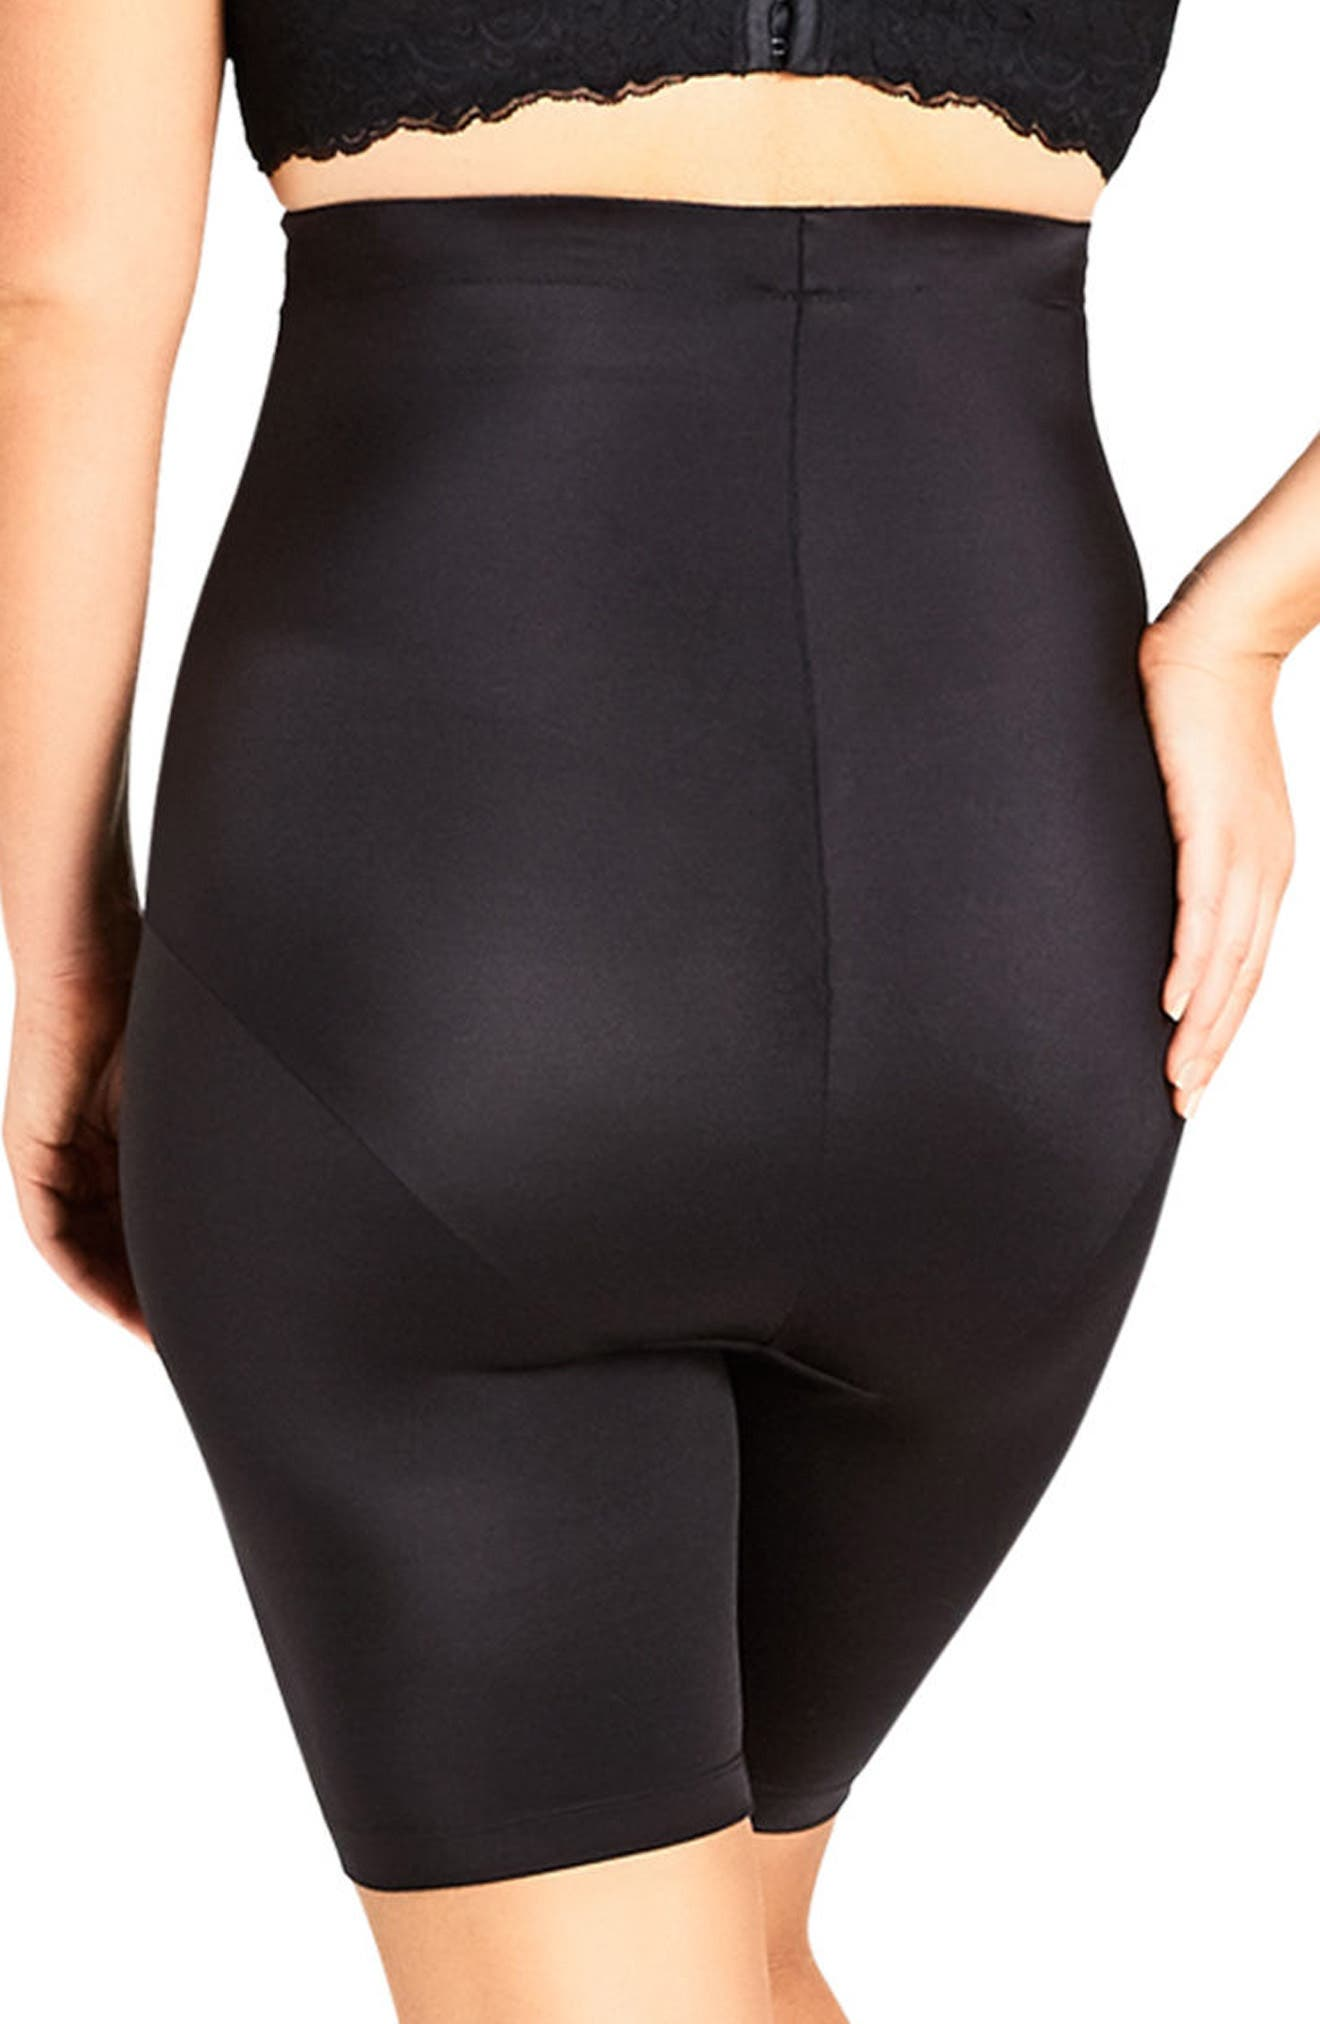 Smooth & Chic Thigh Shaper,                             Alternate thumbnail 2, color,                             001